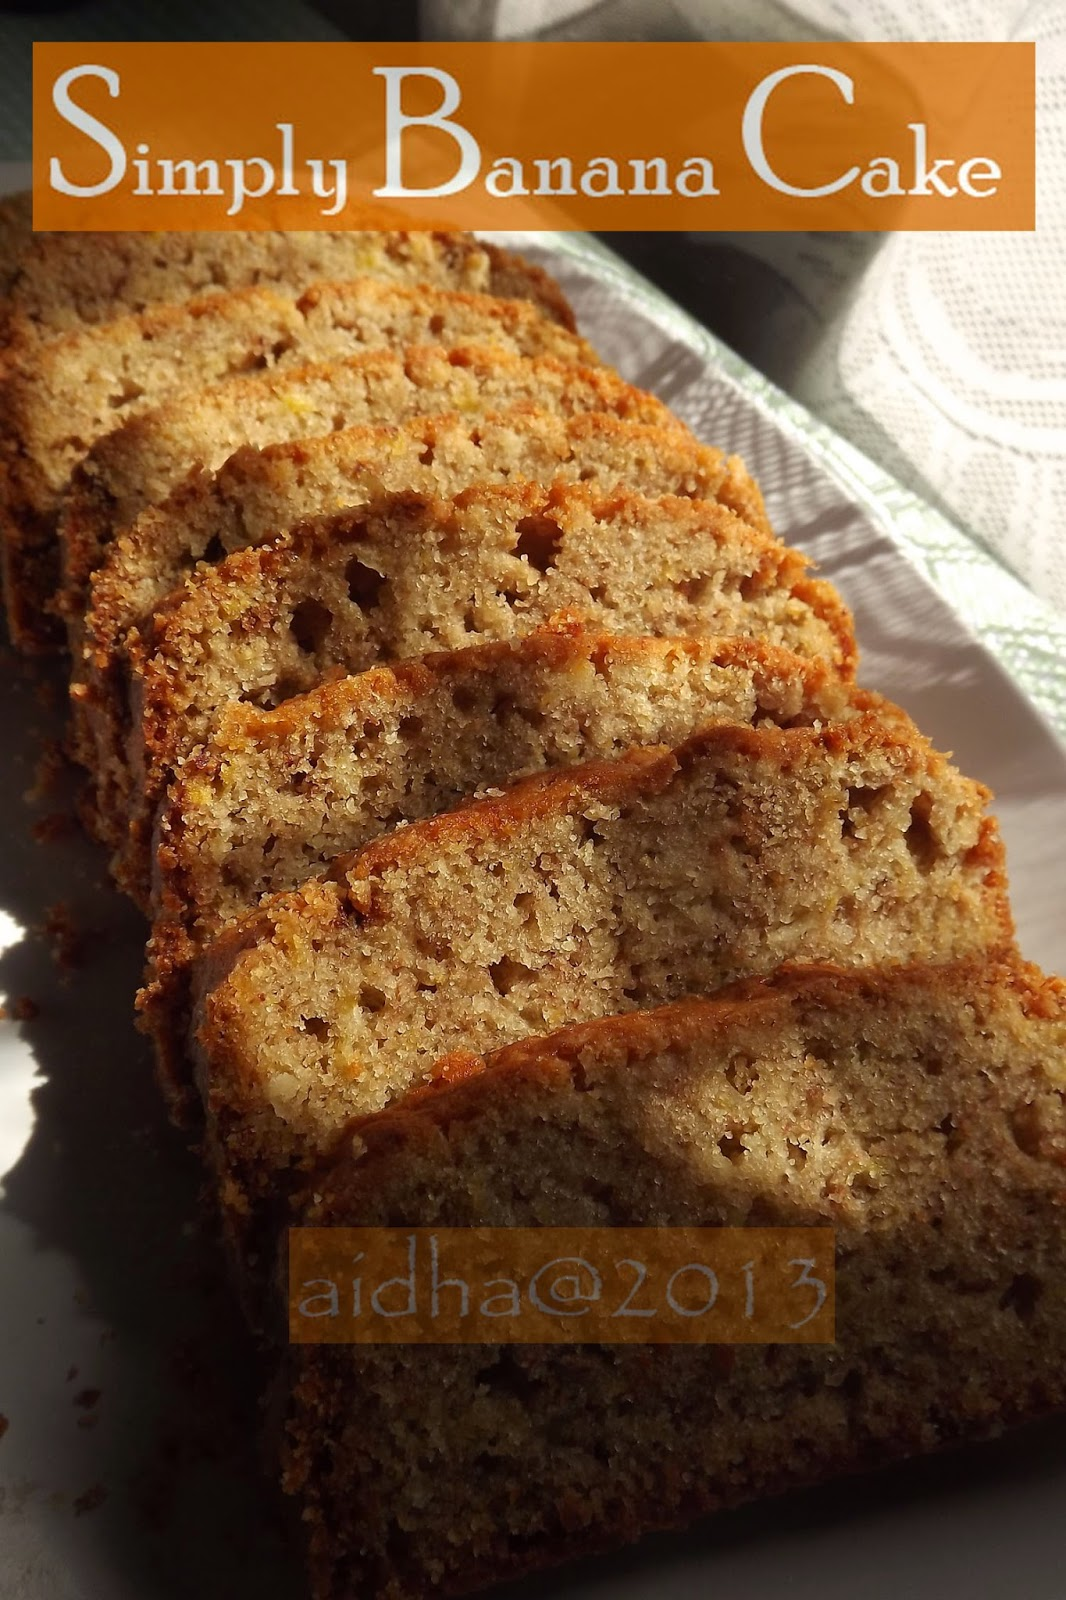 Can I Reduce The Egg In A Loaf Cake